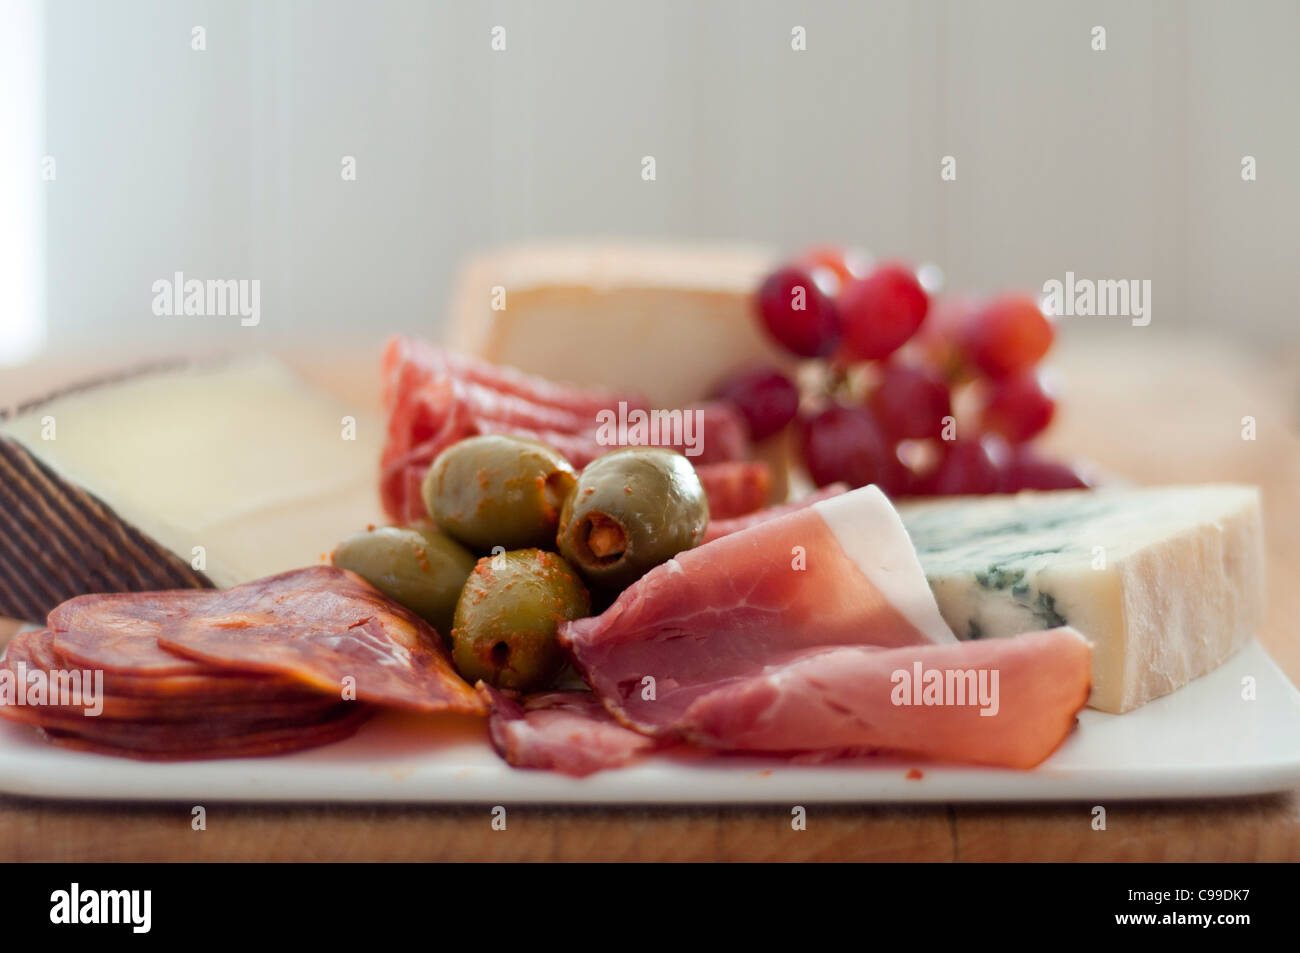 Small Antipasti Platter Of Mostly Italian Cheeses And Meats With Stock Photo Alamy